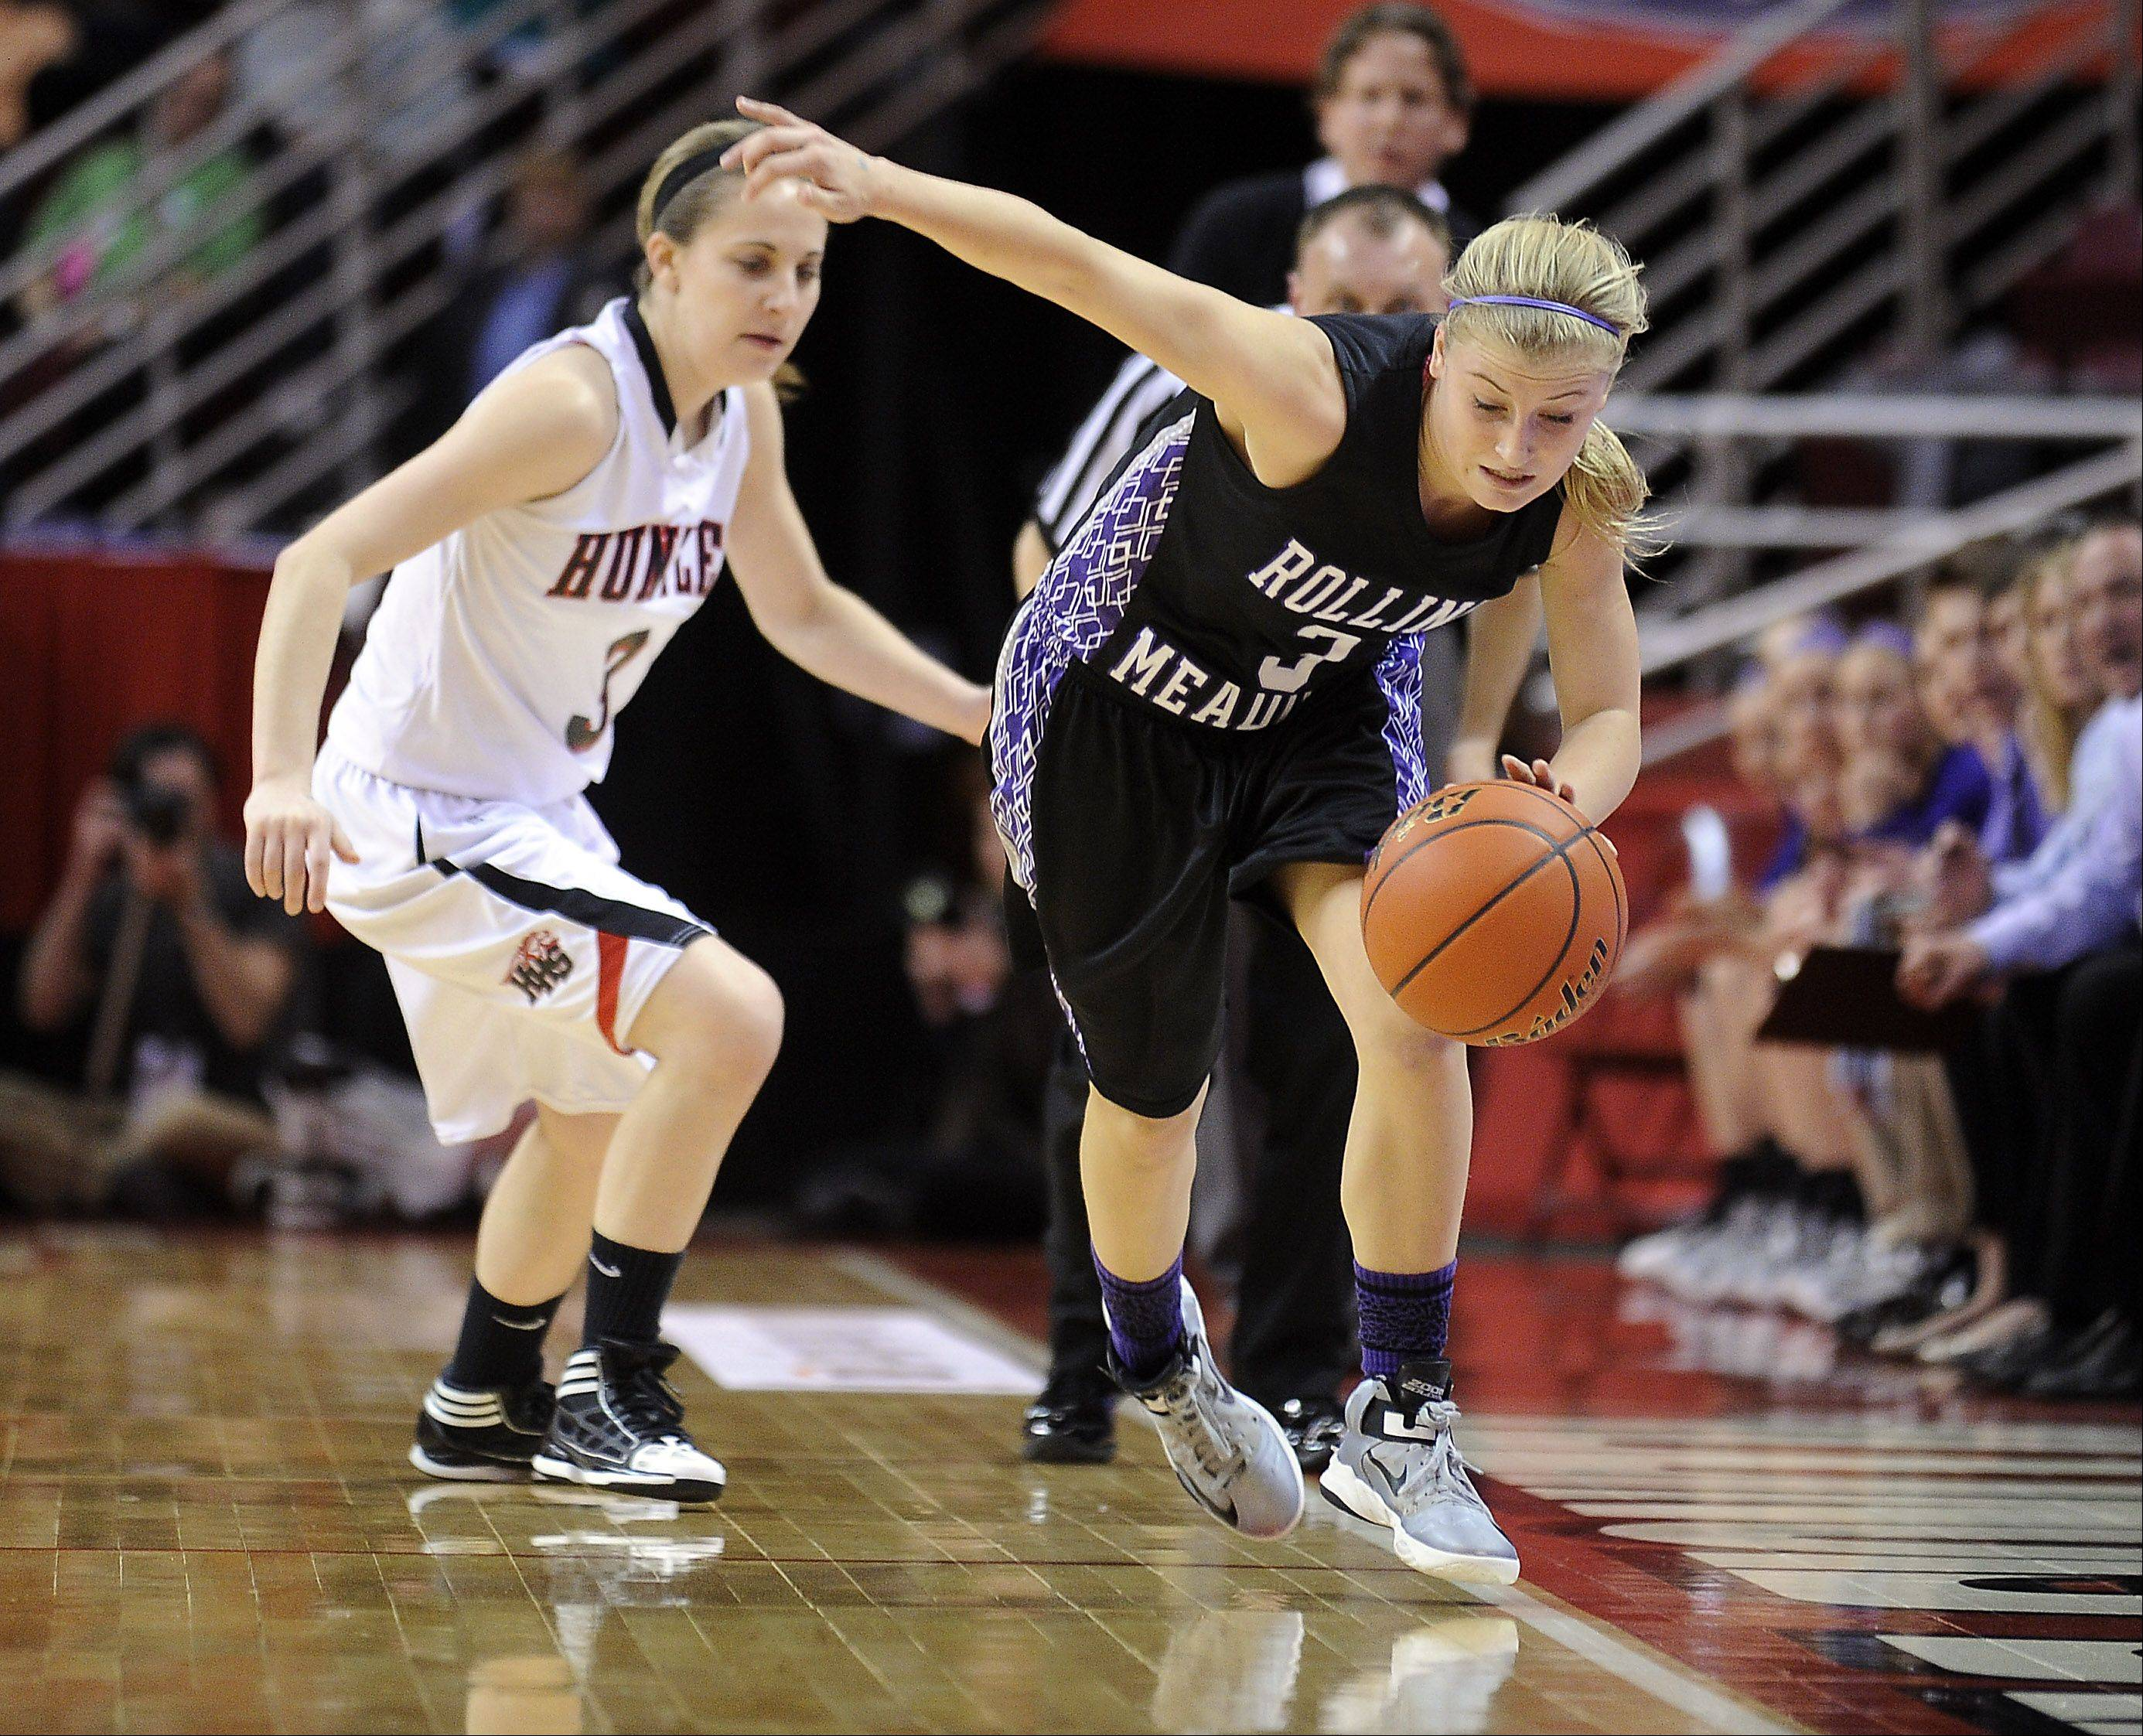 Rolling Meadows' Jackie Kemph tries to keep the ball in play as Huntley's Amanda Kaniewski applies pressure.